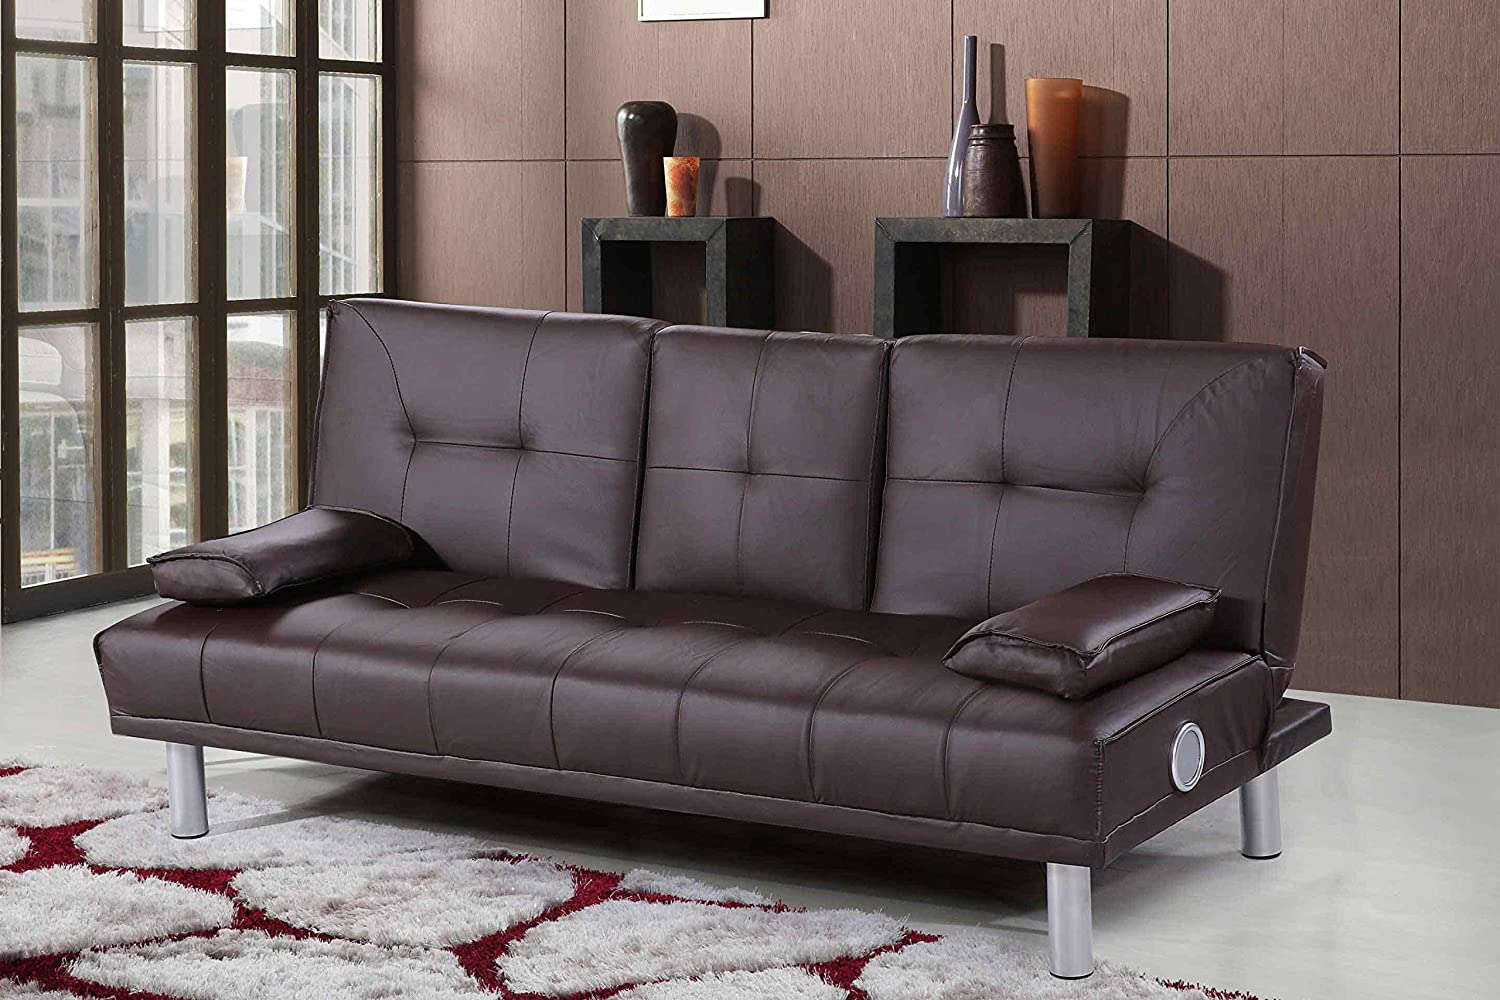 Pleasant New Manhattan Modern Sleep Design Faux Leather Sofa Bed With Bluetooth Stereo Speakers Available In Brown Bralicious Painted Fabric Chair Ideas Braliciousco